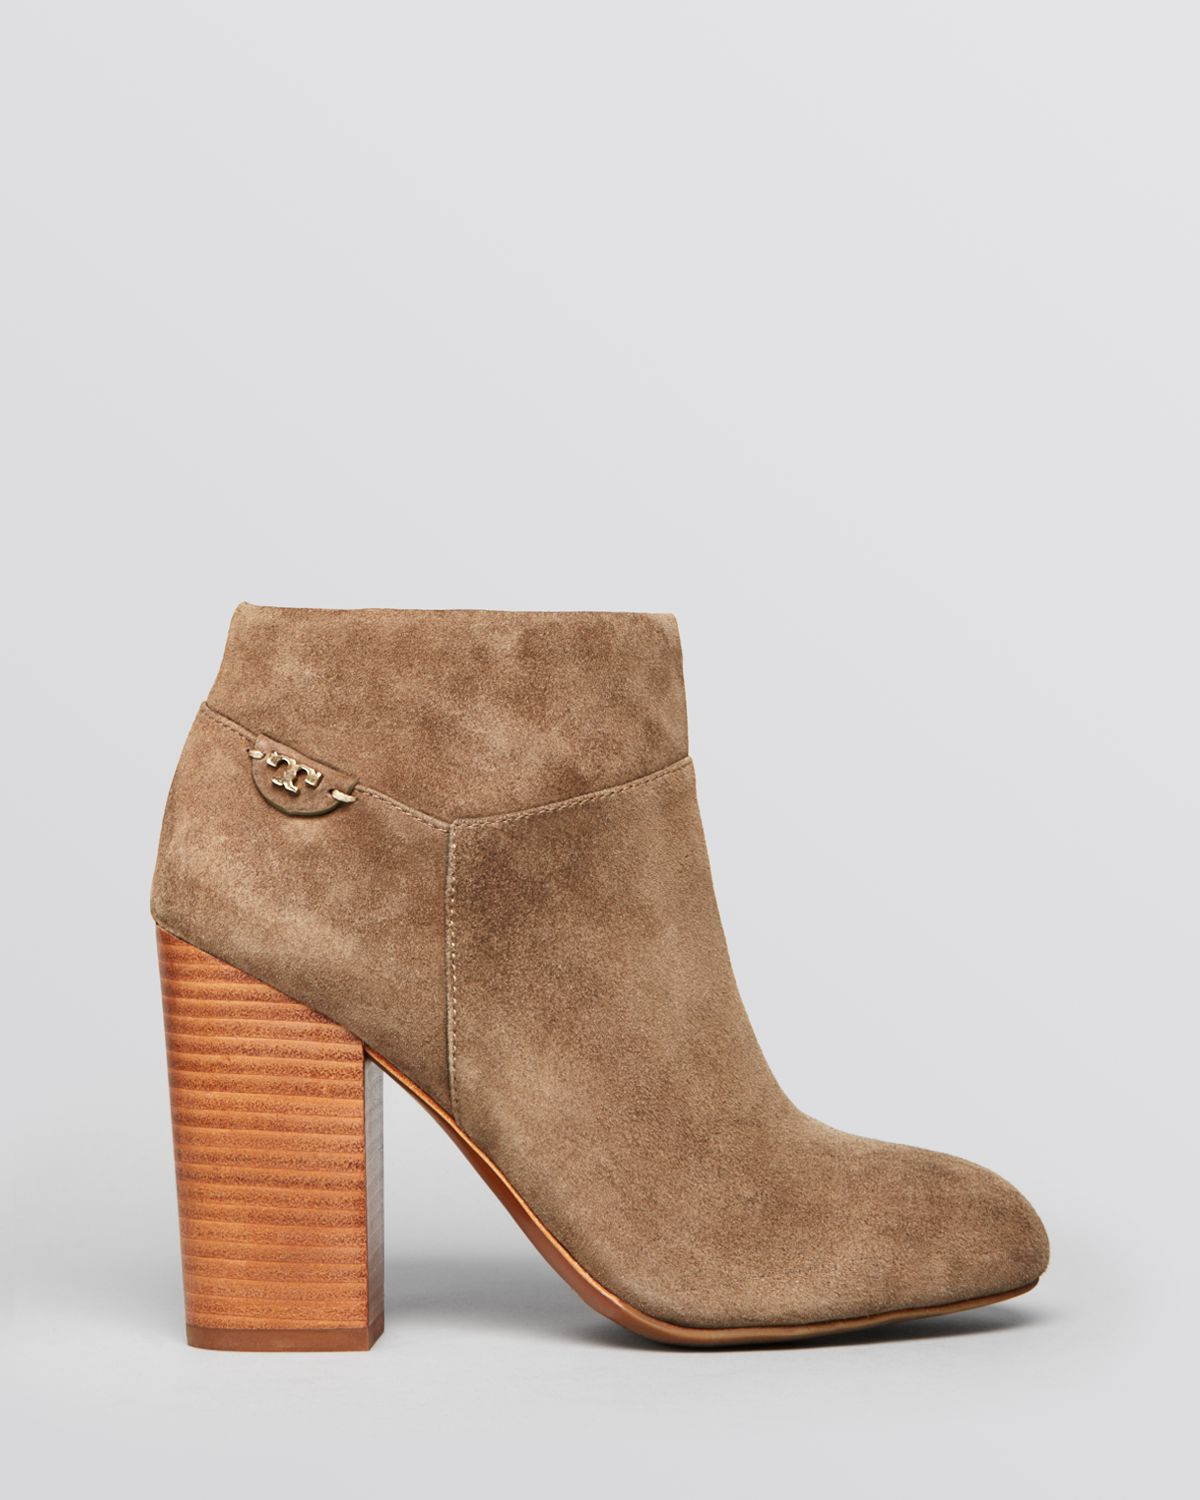 3a52e2a5acb Lyst - Tory Burch Booties - Fulton High Heel in Brown